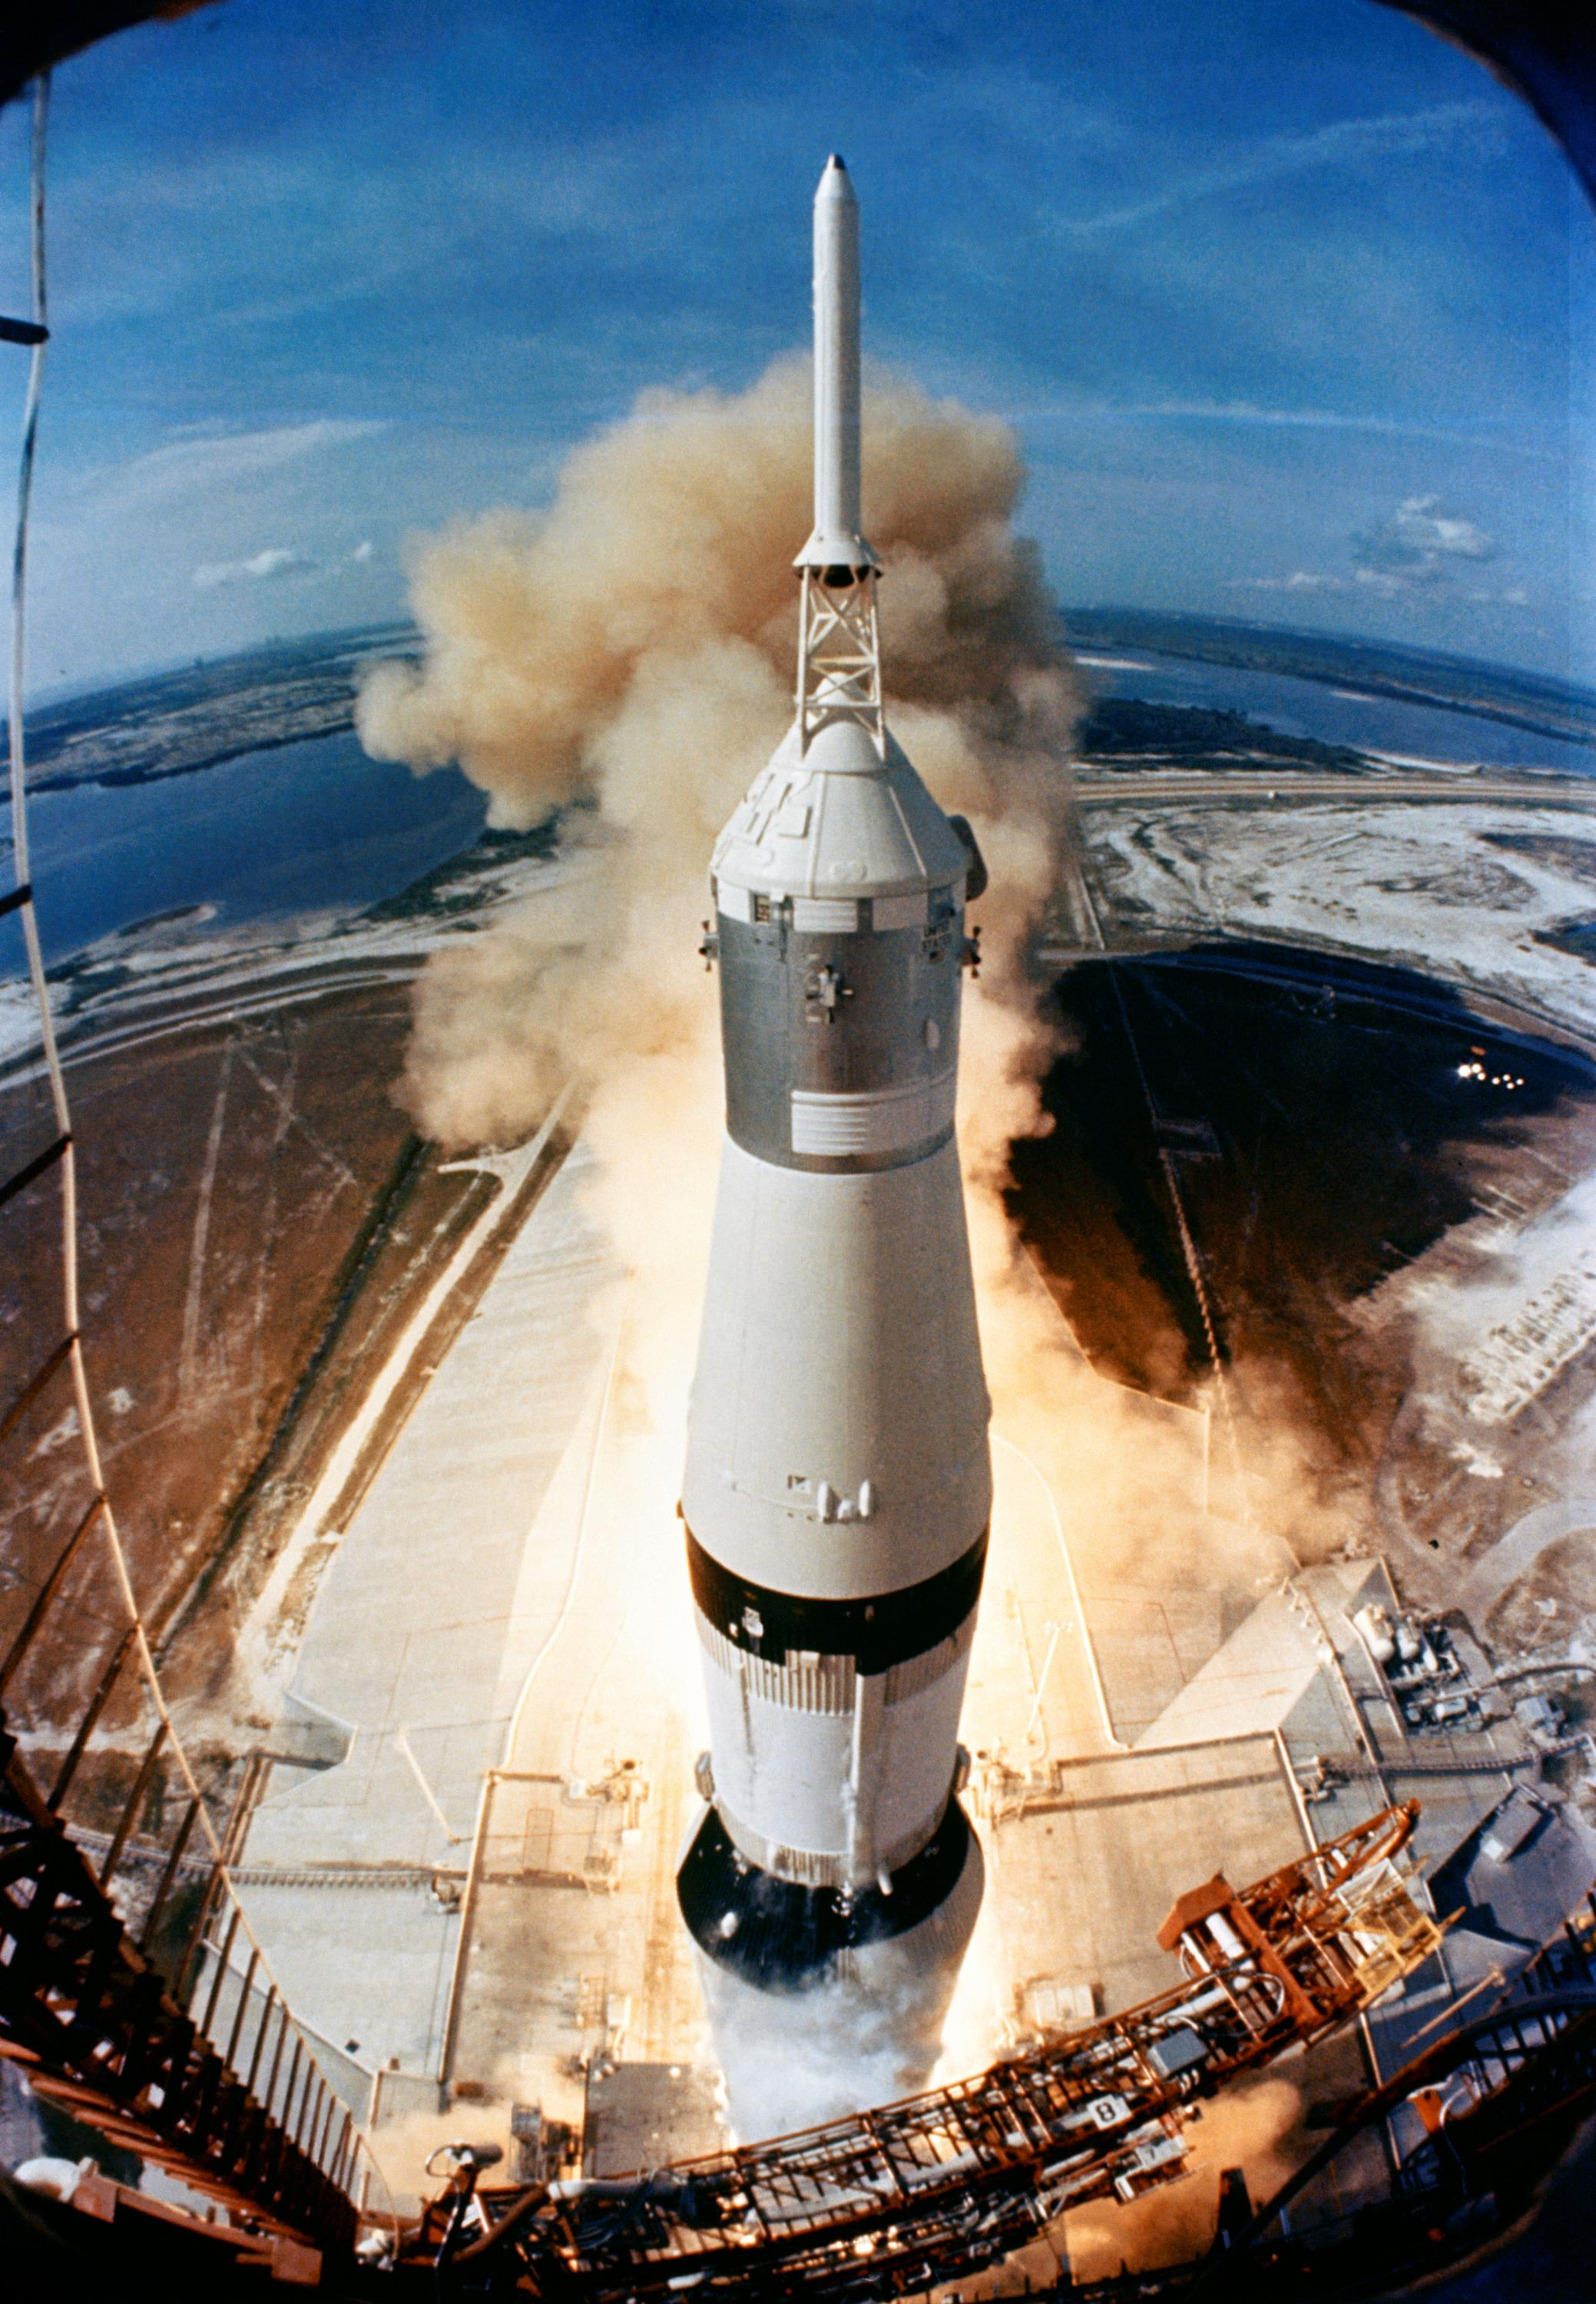 Apollo 11's Saturn V rocket launches July 16, 1969 (Photo by NASA)